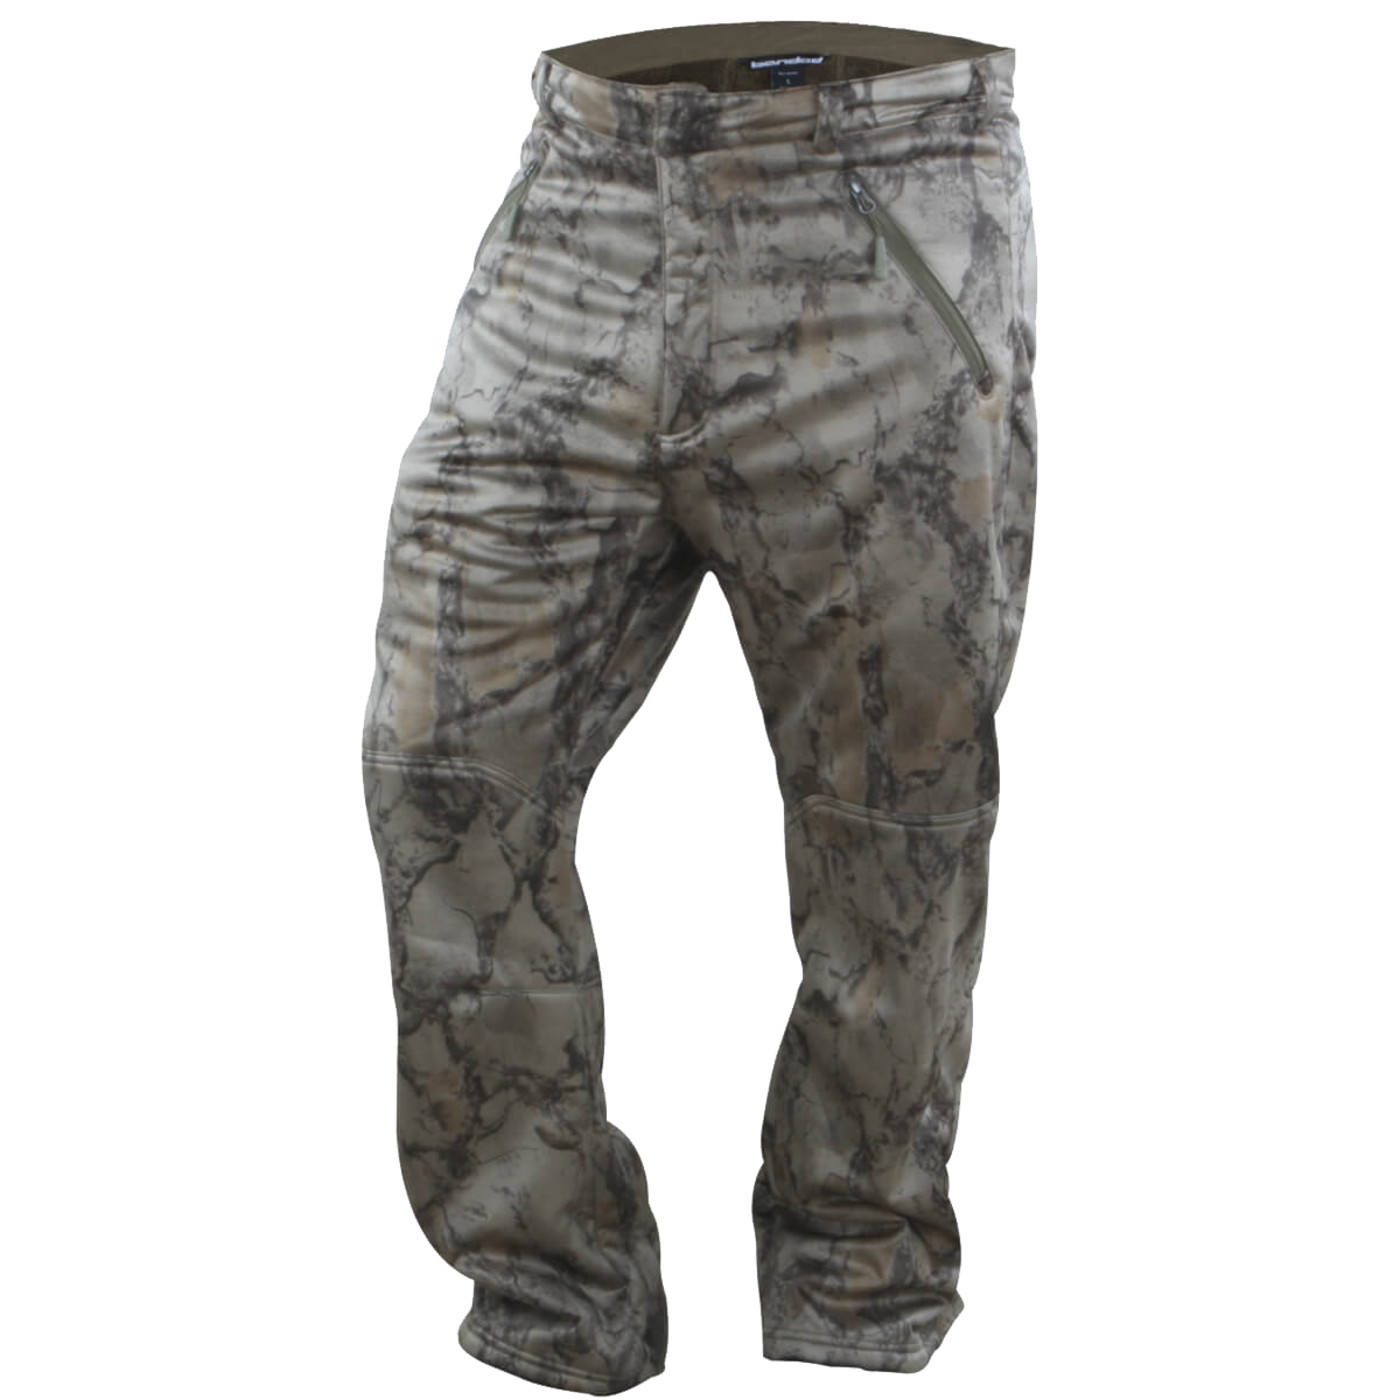 Banded White River Wader Pants in Natural Gear Color